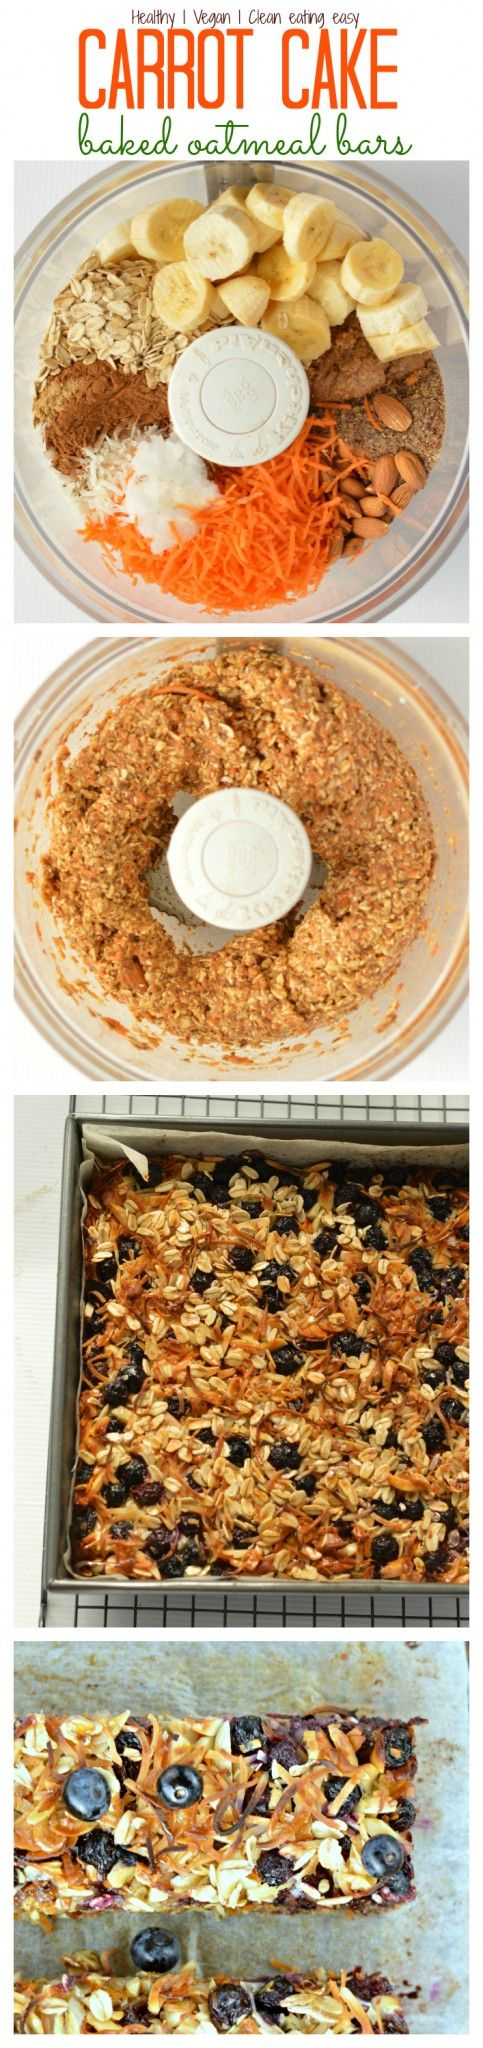 Carrot Cake Baked Oatmeal Bars are THE healthy on-the-go breakfast you need for those mornings on the run. Quick healthy breakfast packed of…